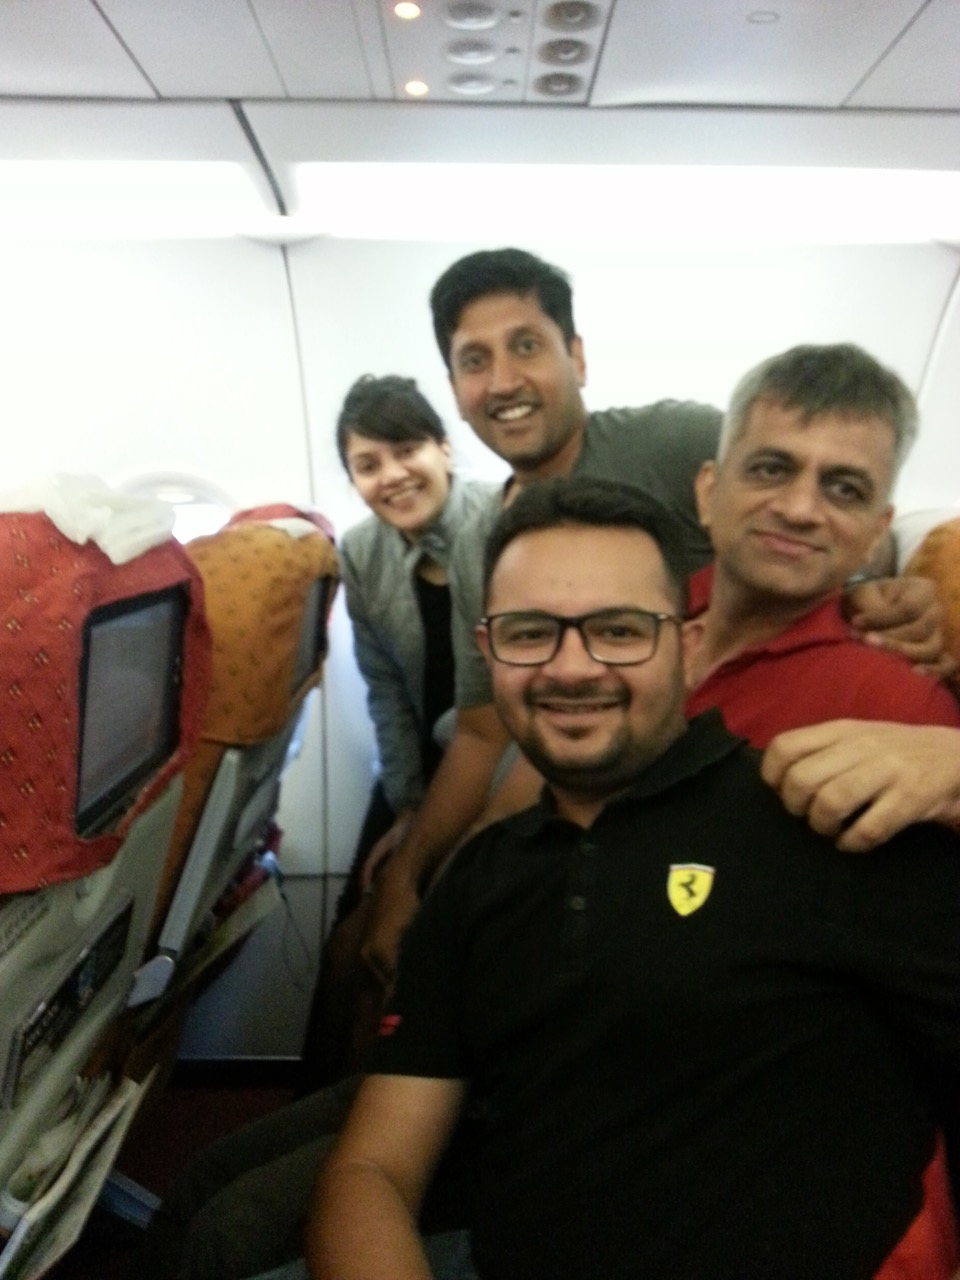 Kuntal, Me, Brijen, Yash, back to base - Mumbai.